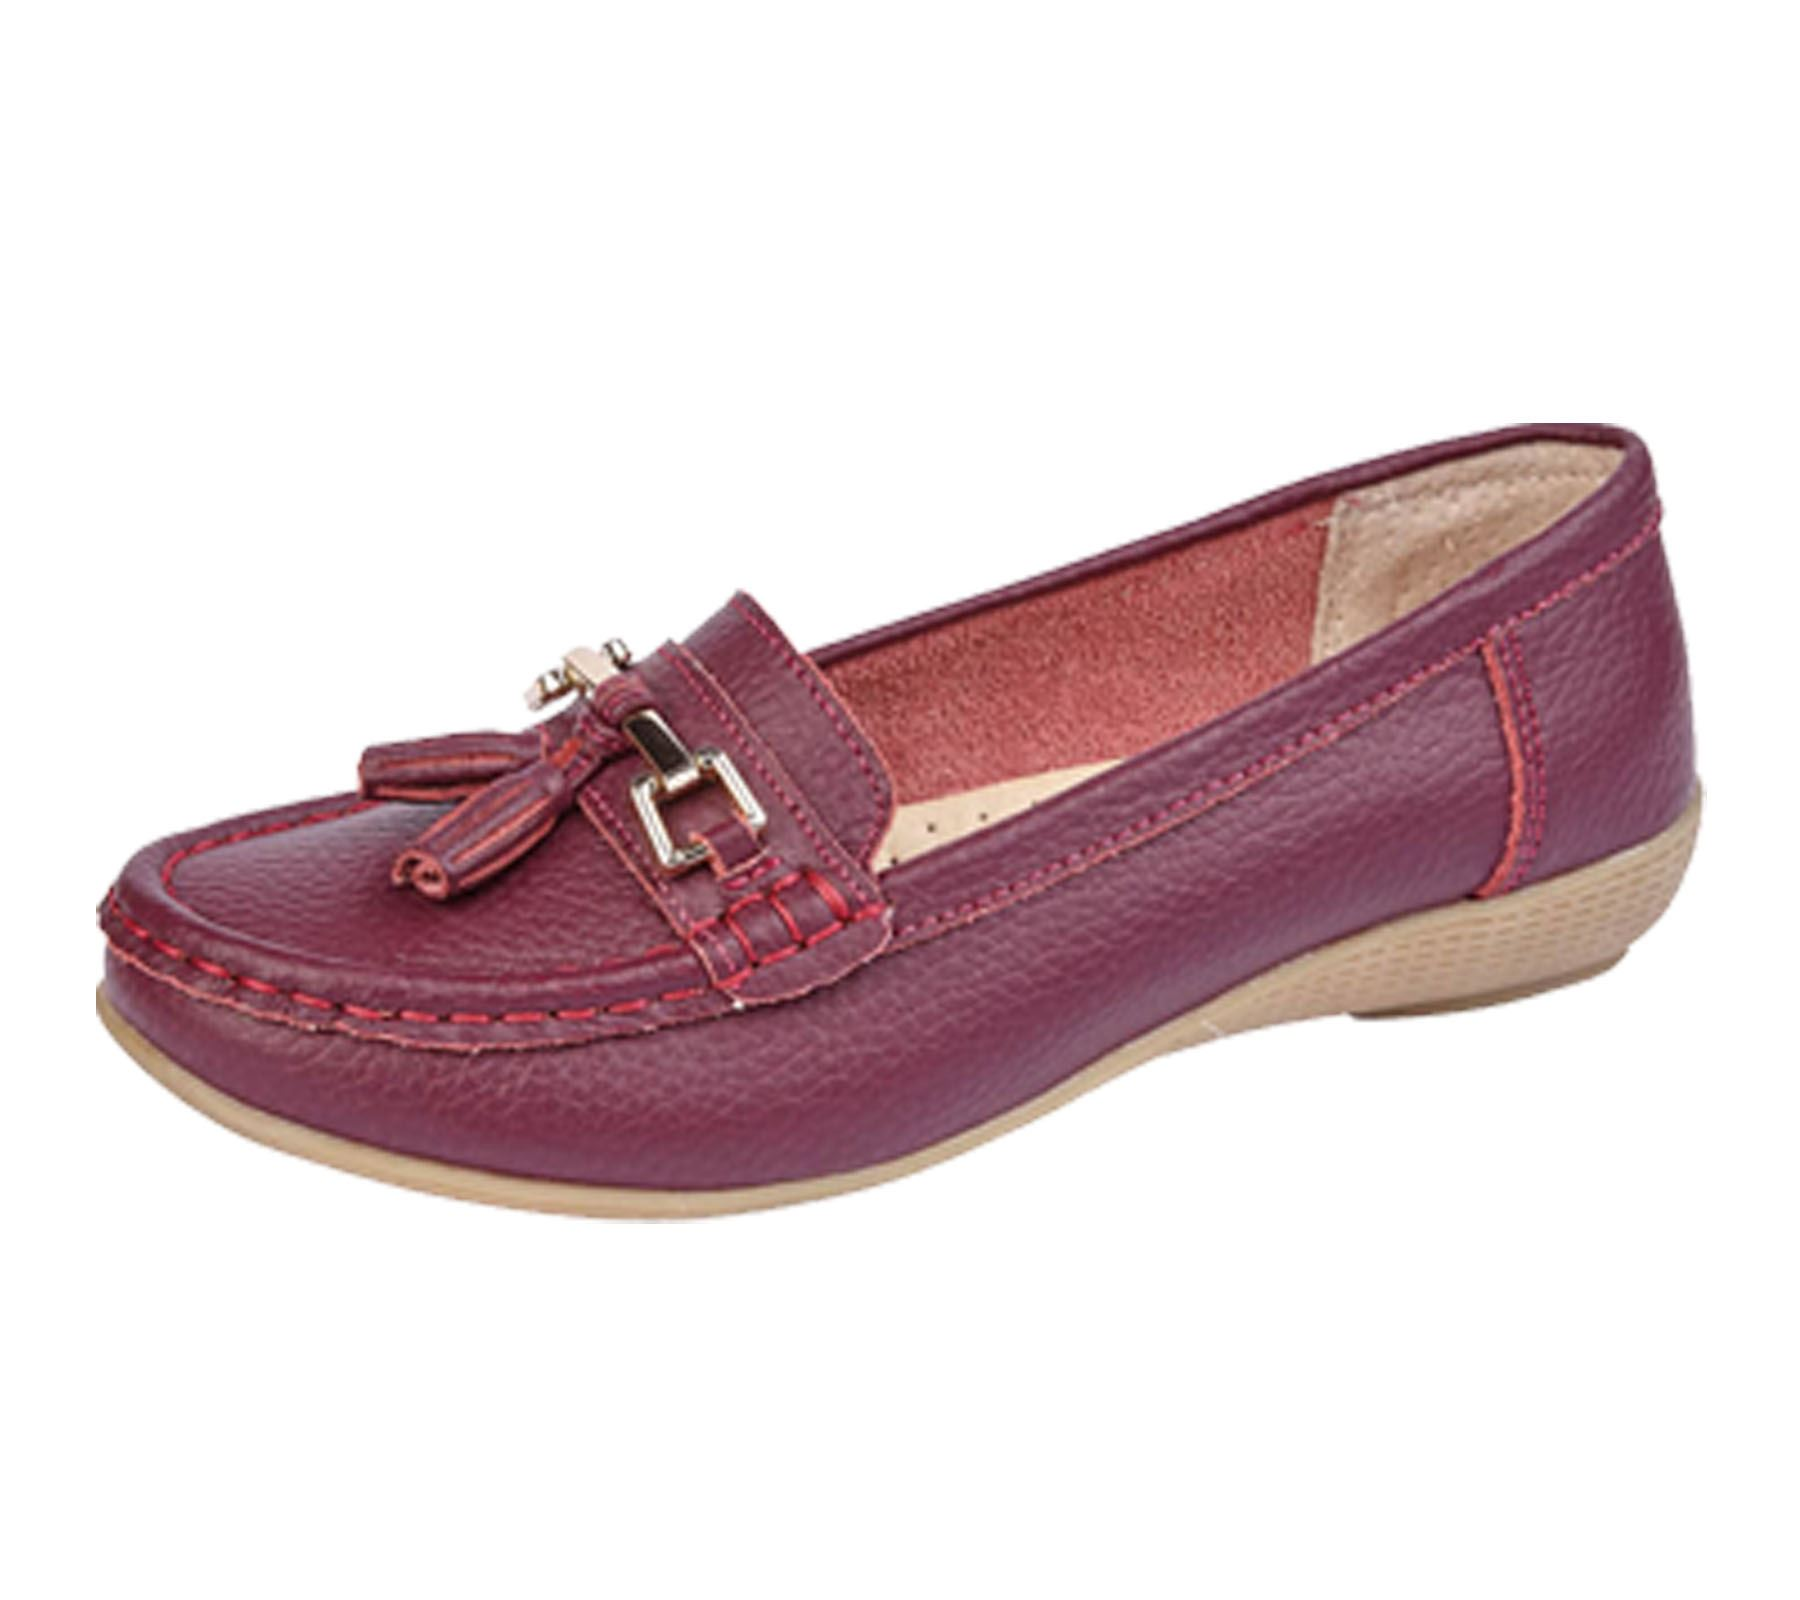 Womens Ladies Shoes Tassel Wi9d2ehy Loafer Plimsole Flat Pumps Leather XOPikZu